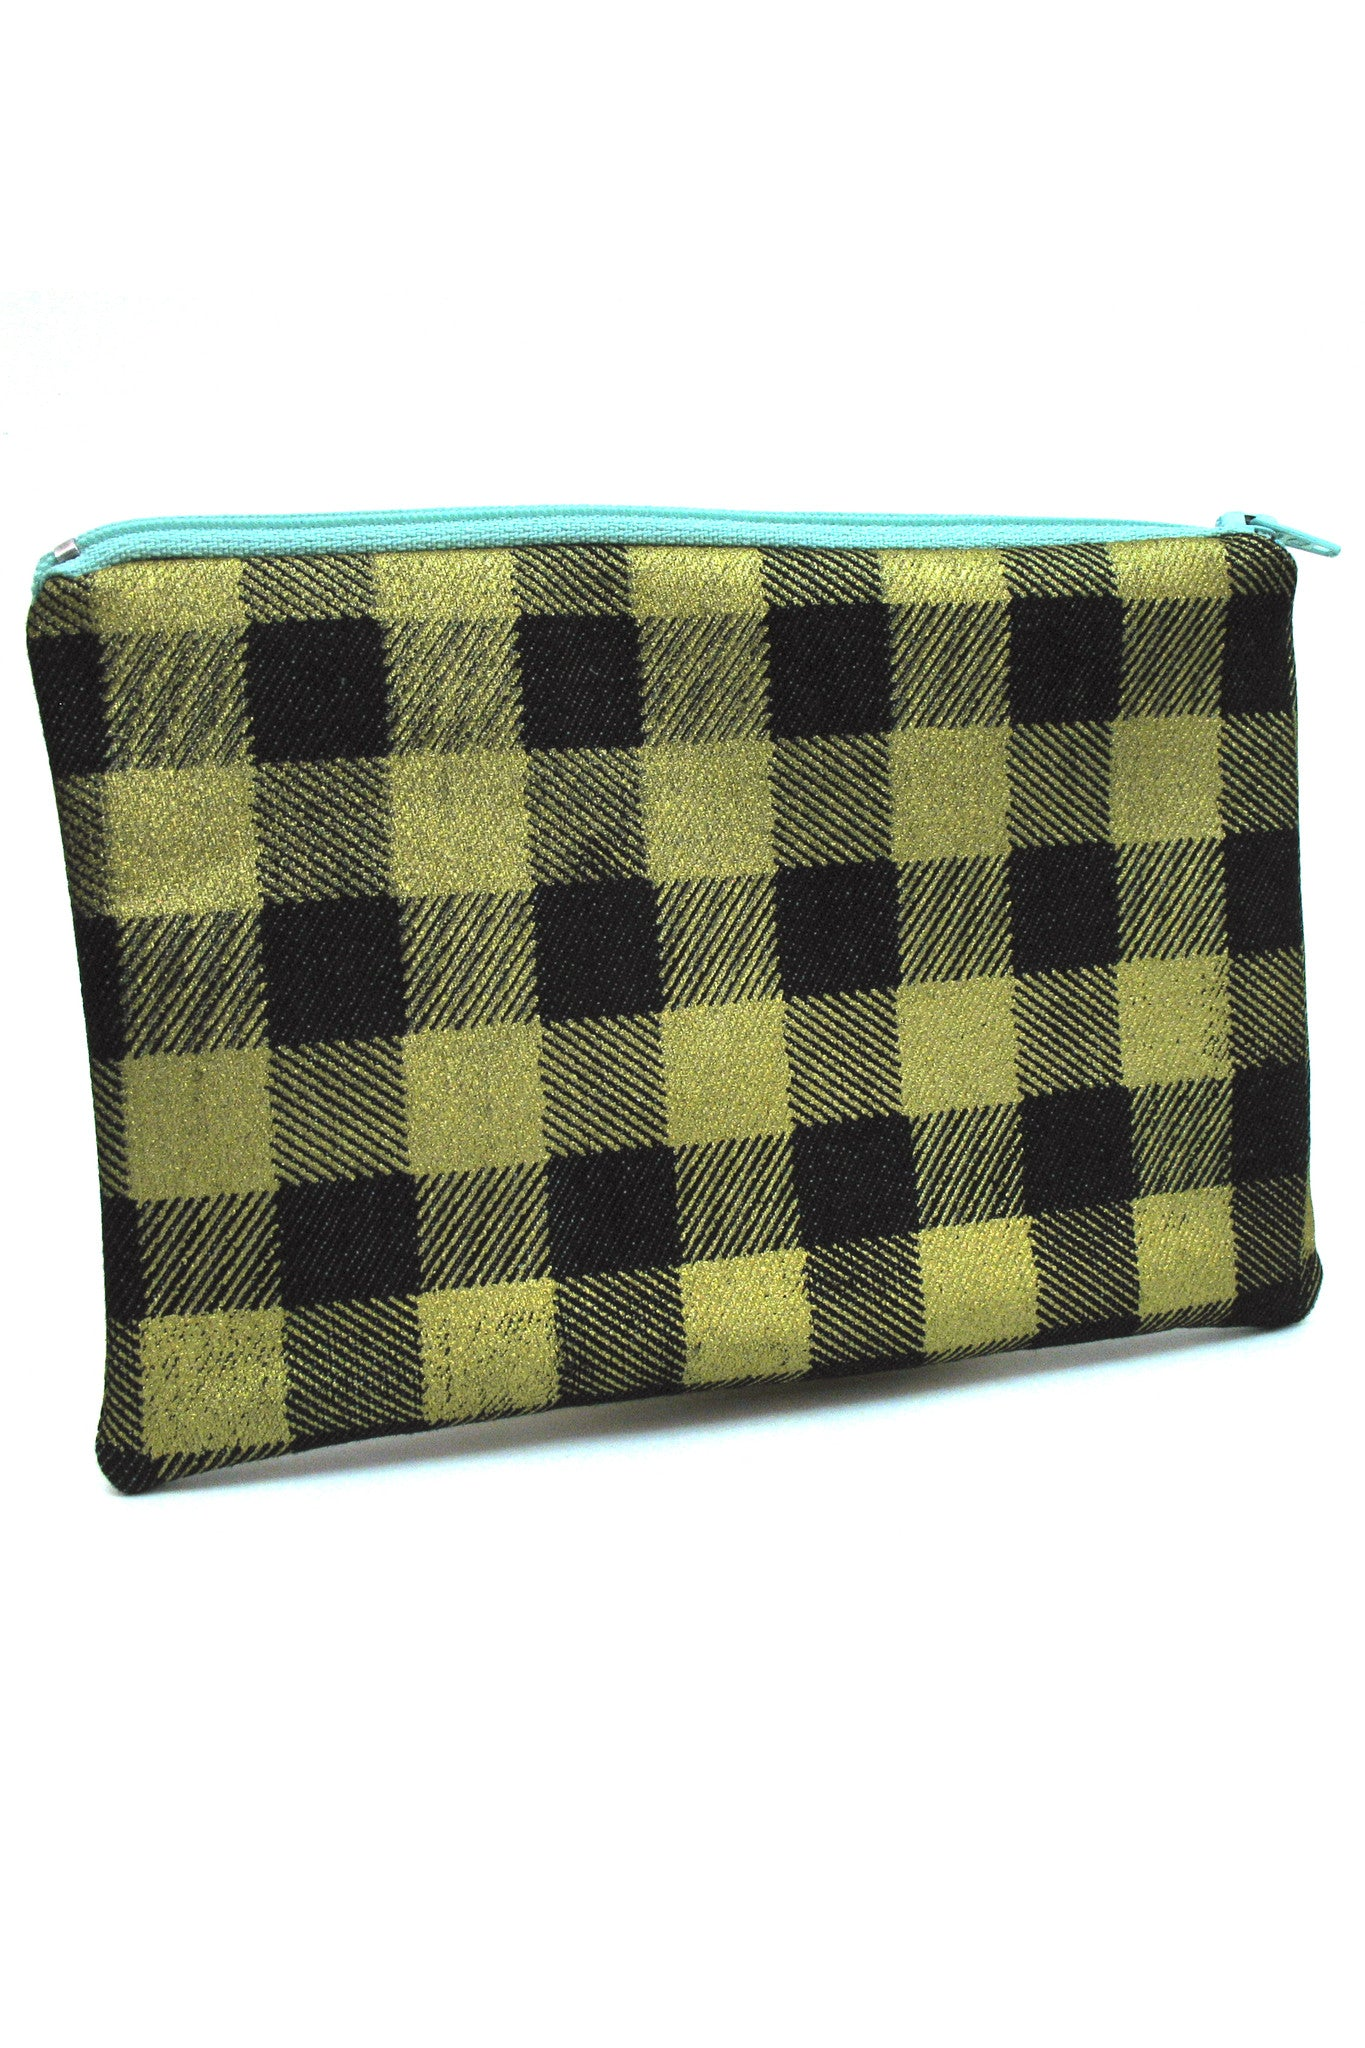 Gold Buffalo Plaid Pouch